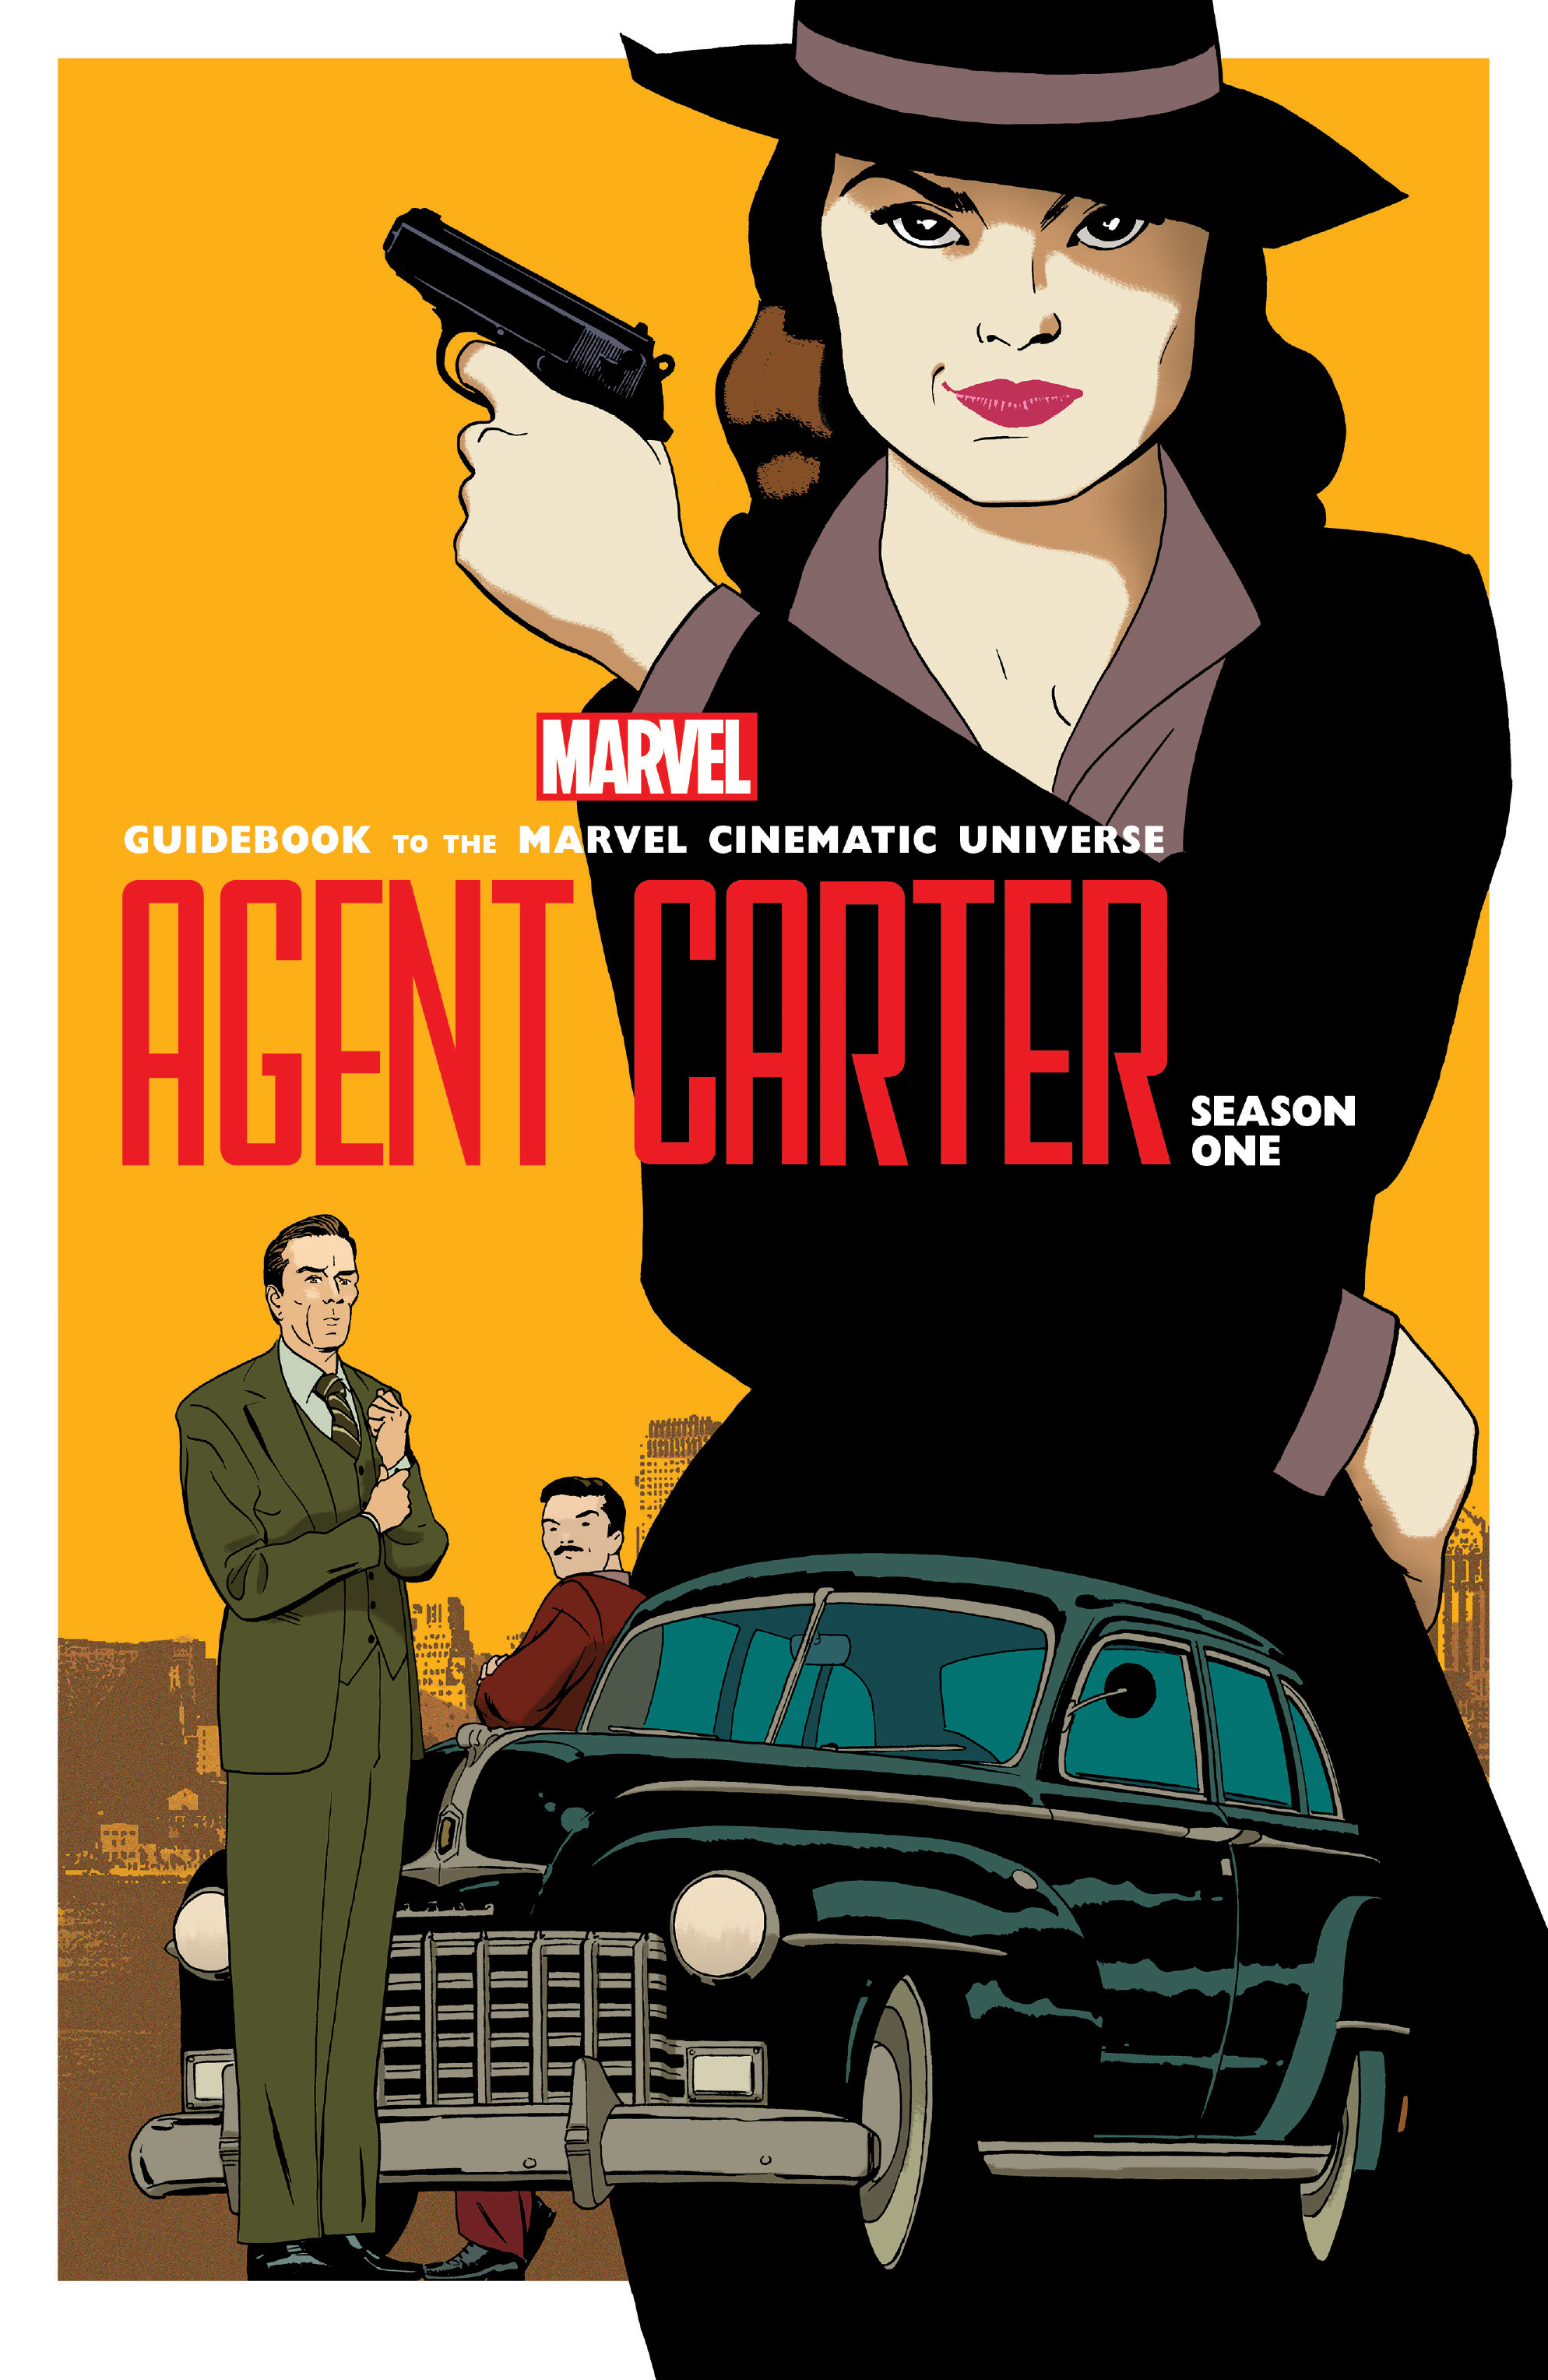 Guidebook to the Marvel Cinematic Universe - Marvels Agent Carter Season One Full Page 1